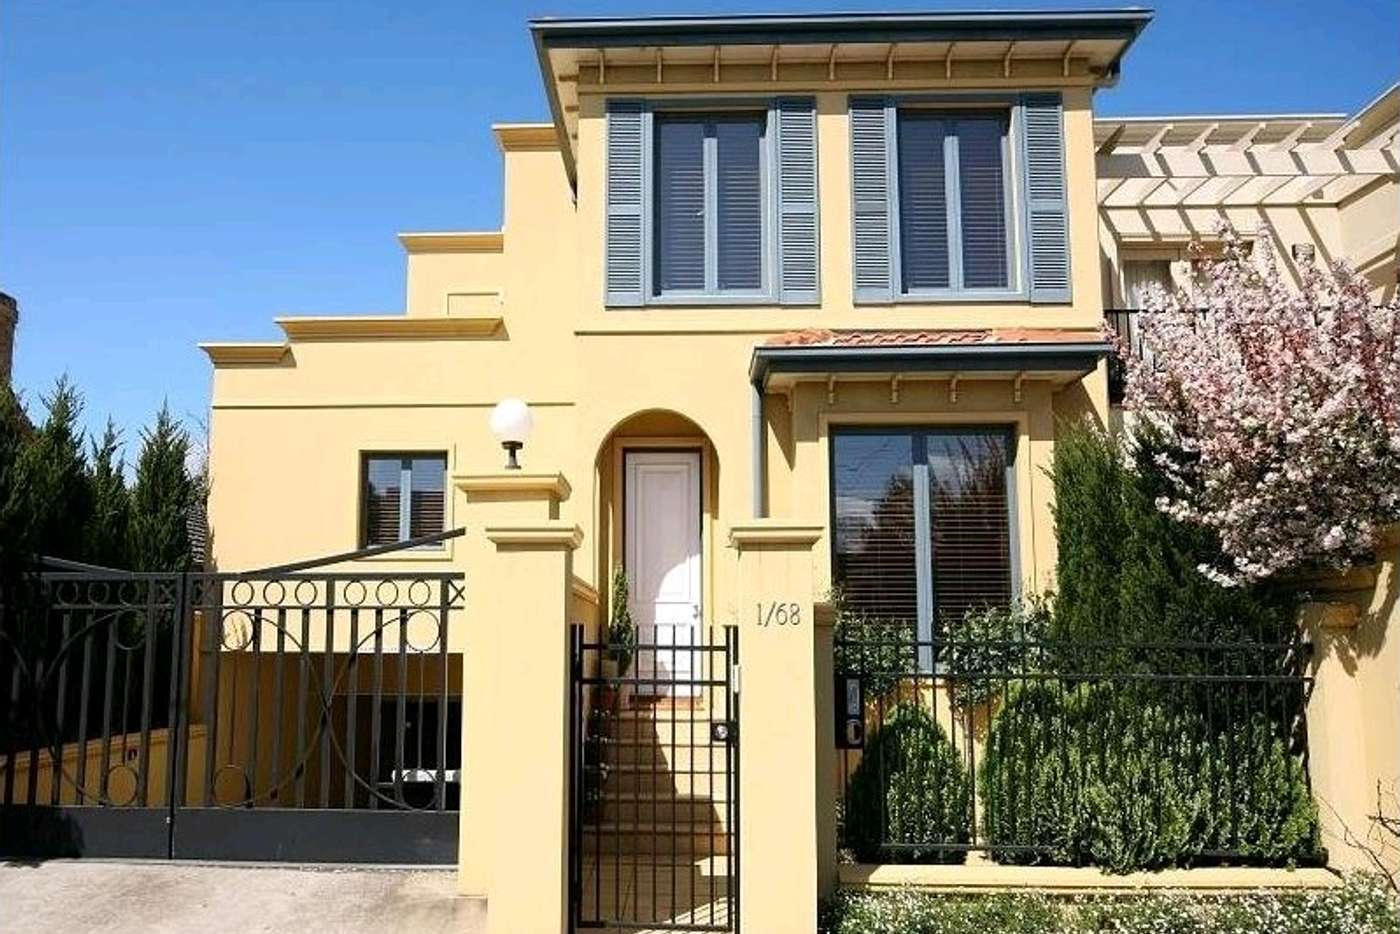 Main view of Homely house listing, 1/68 Bay Street, Brighton VIC 3186